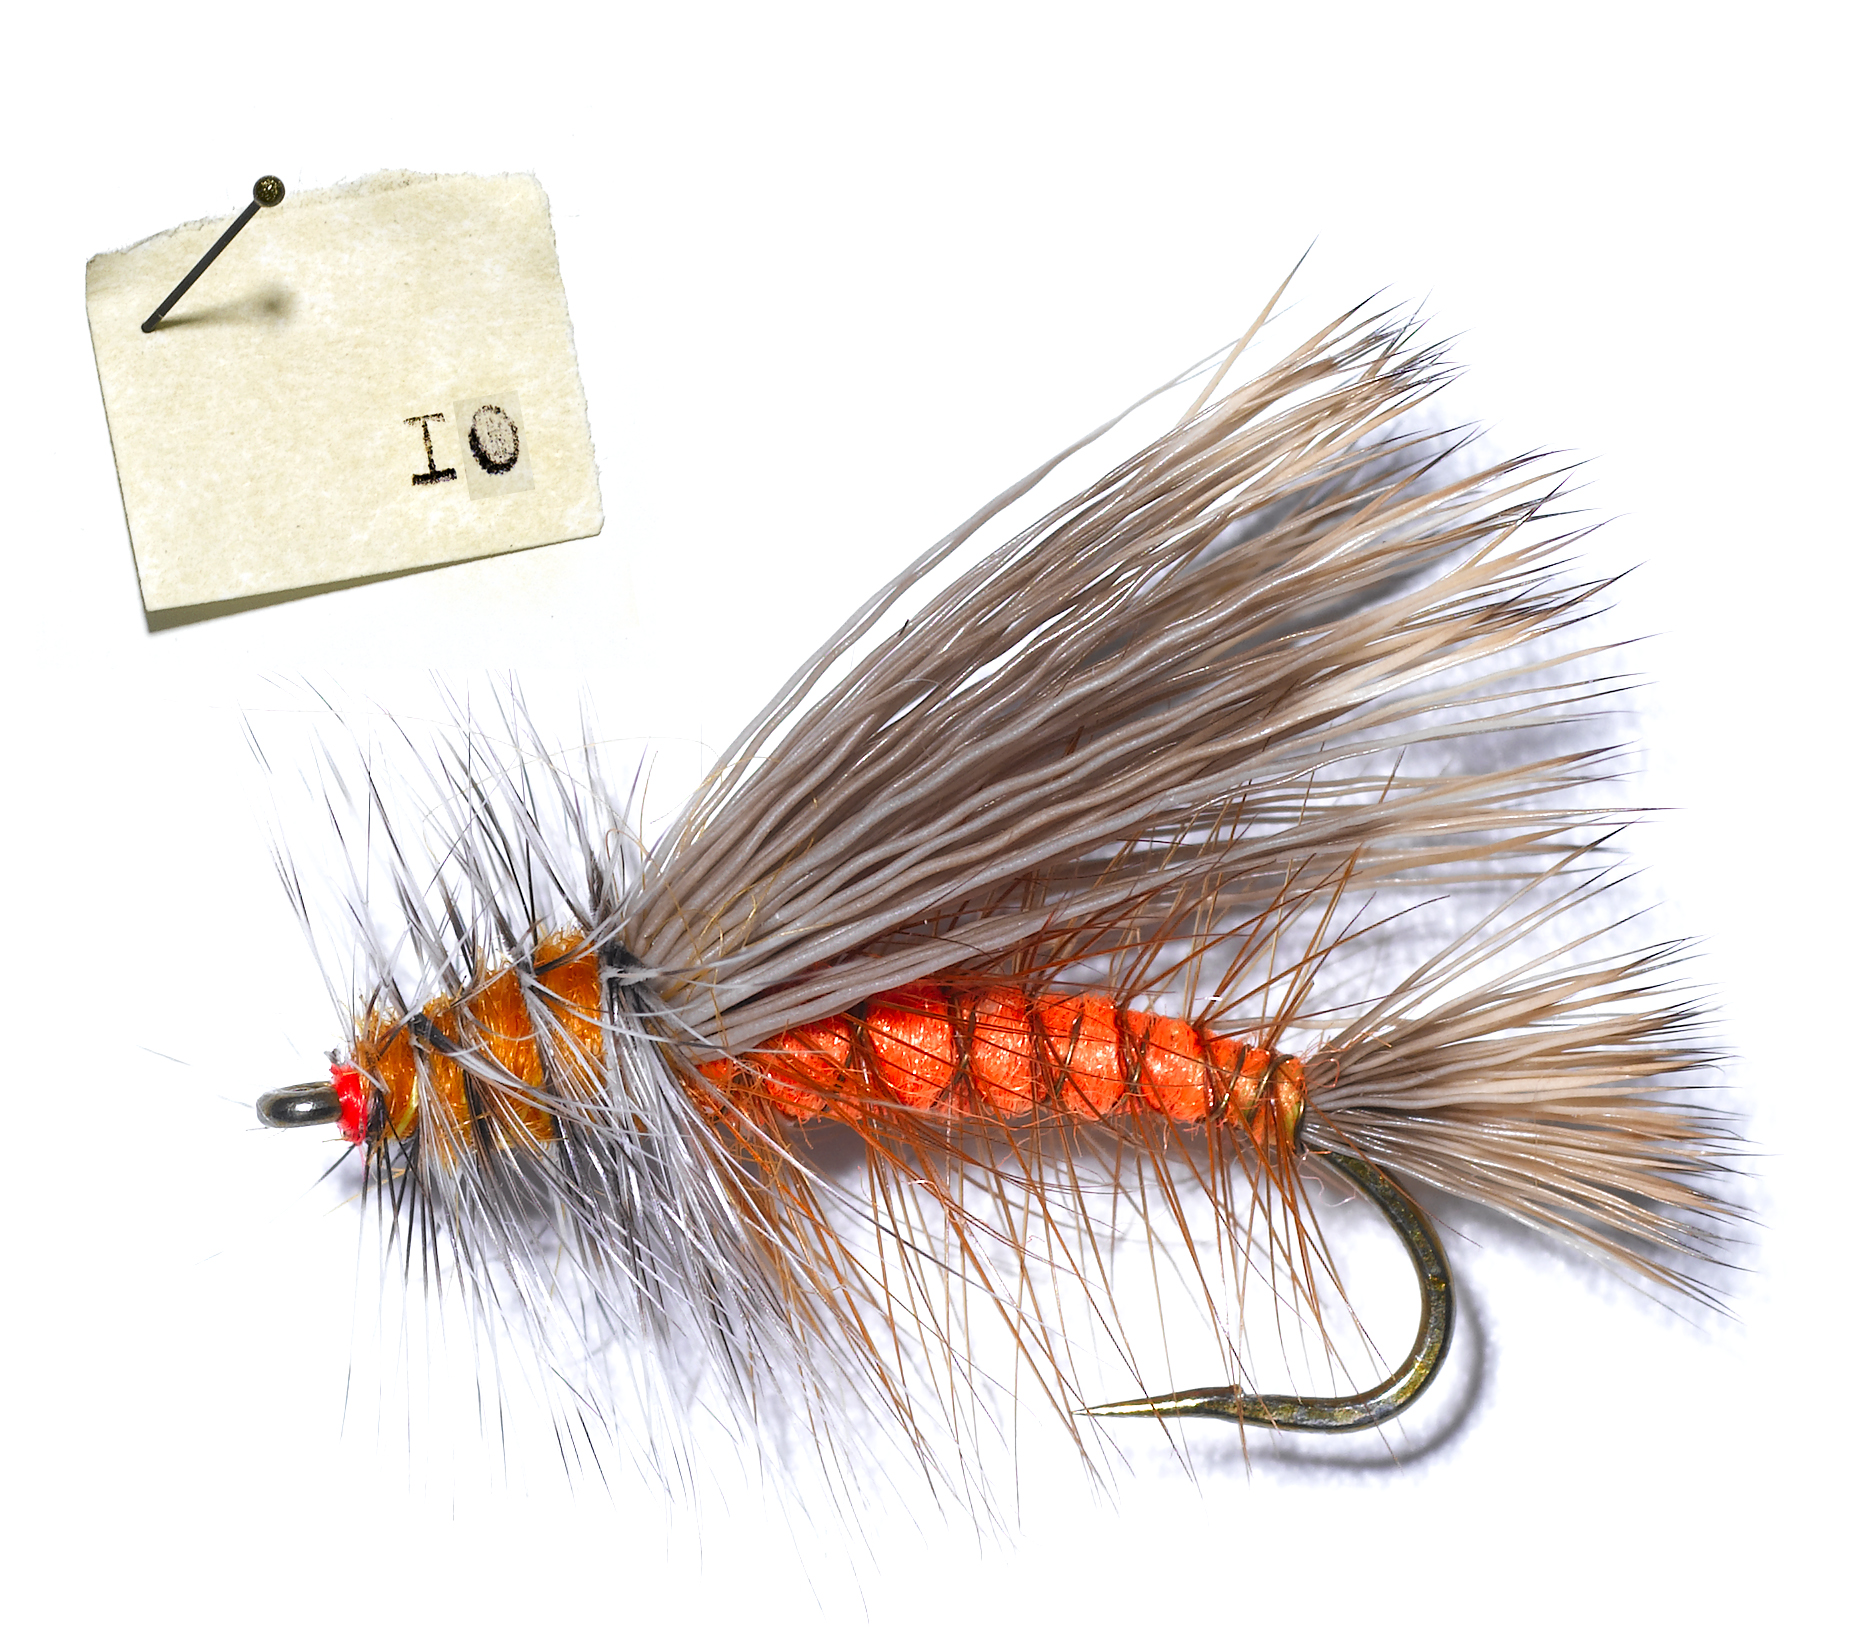 The 25 Greatest Flies of All Time   Field & Stream